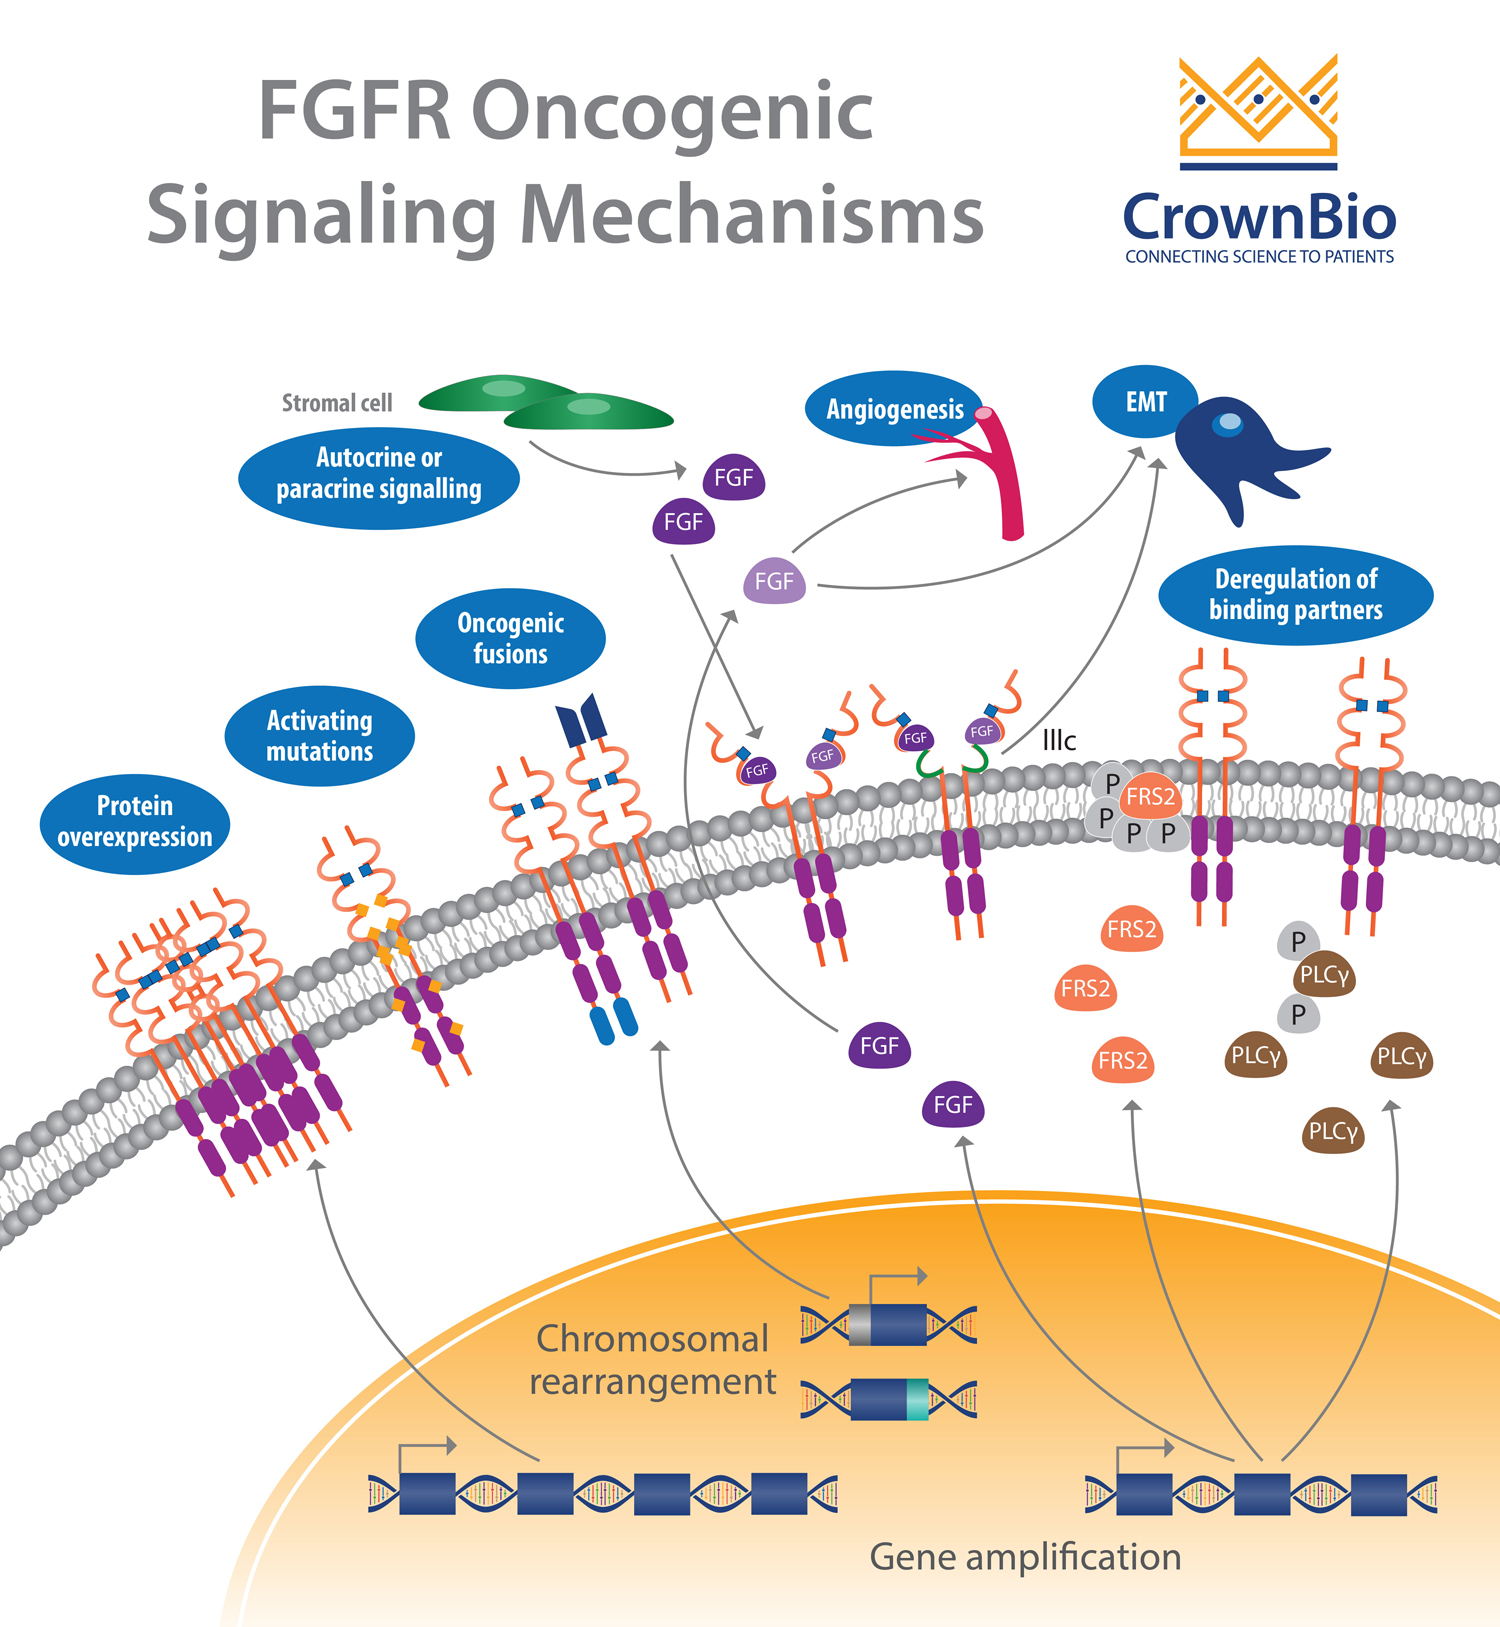 Targeting the FGF/FGFR Signaling Axis with PDX Models